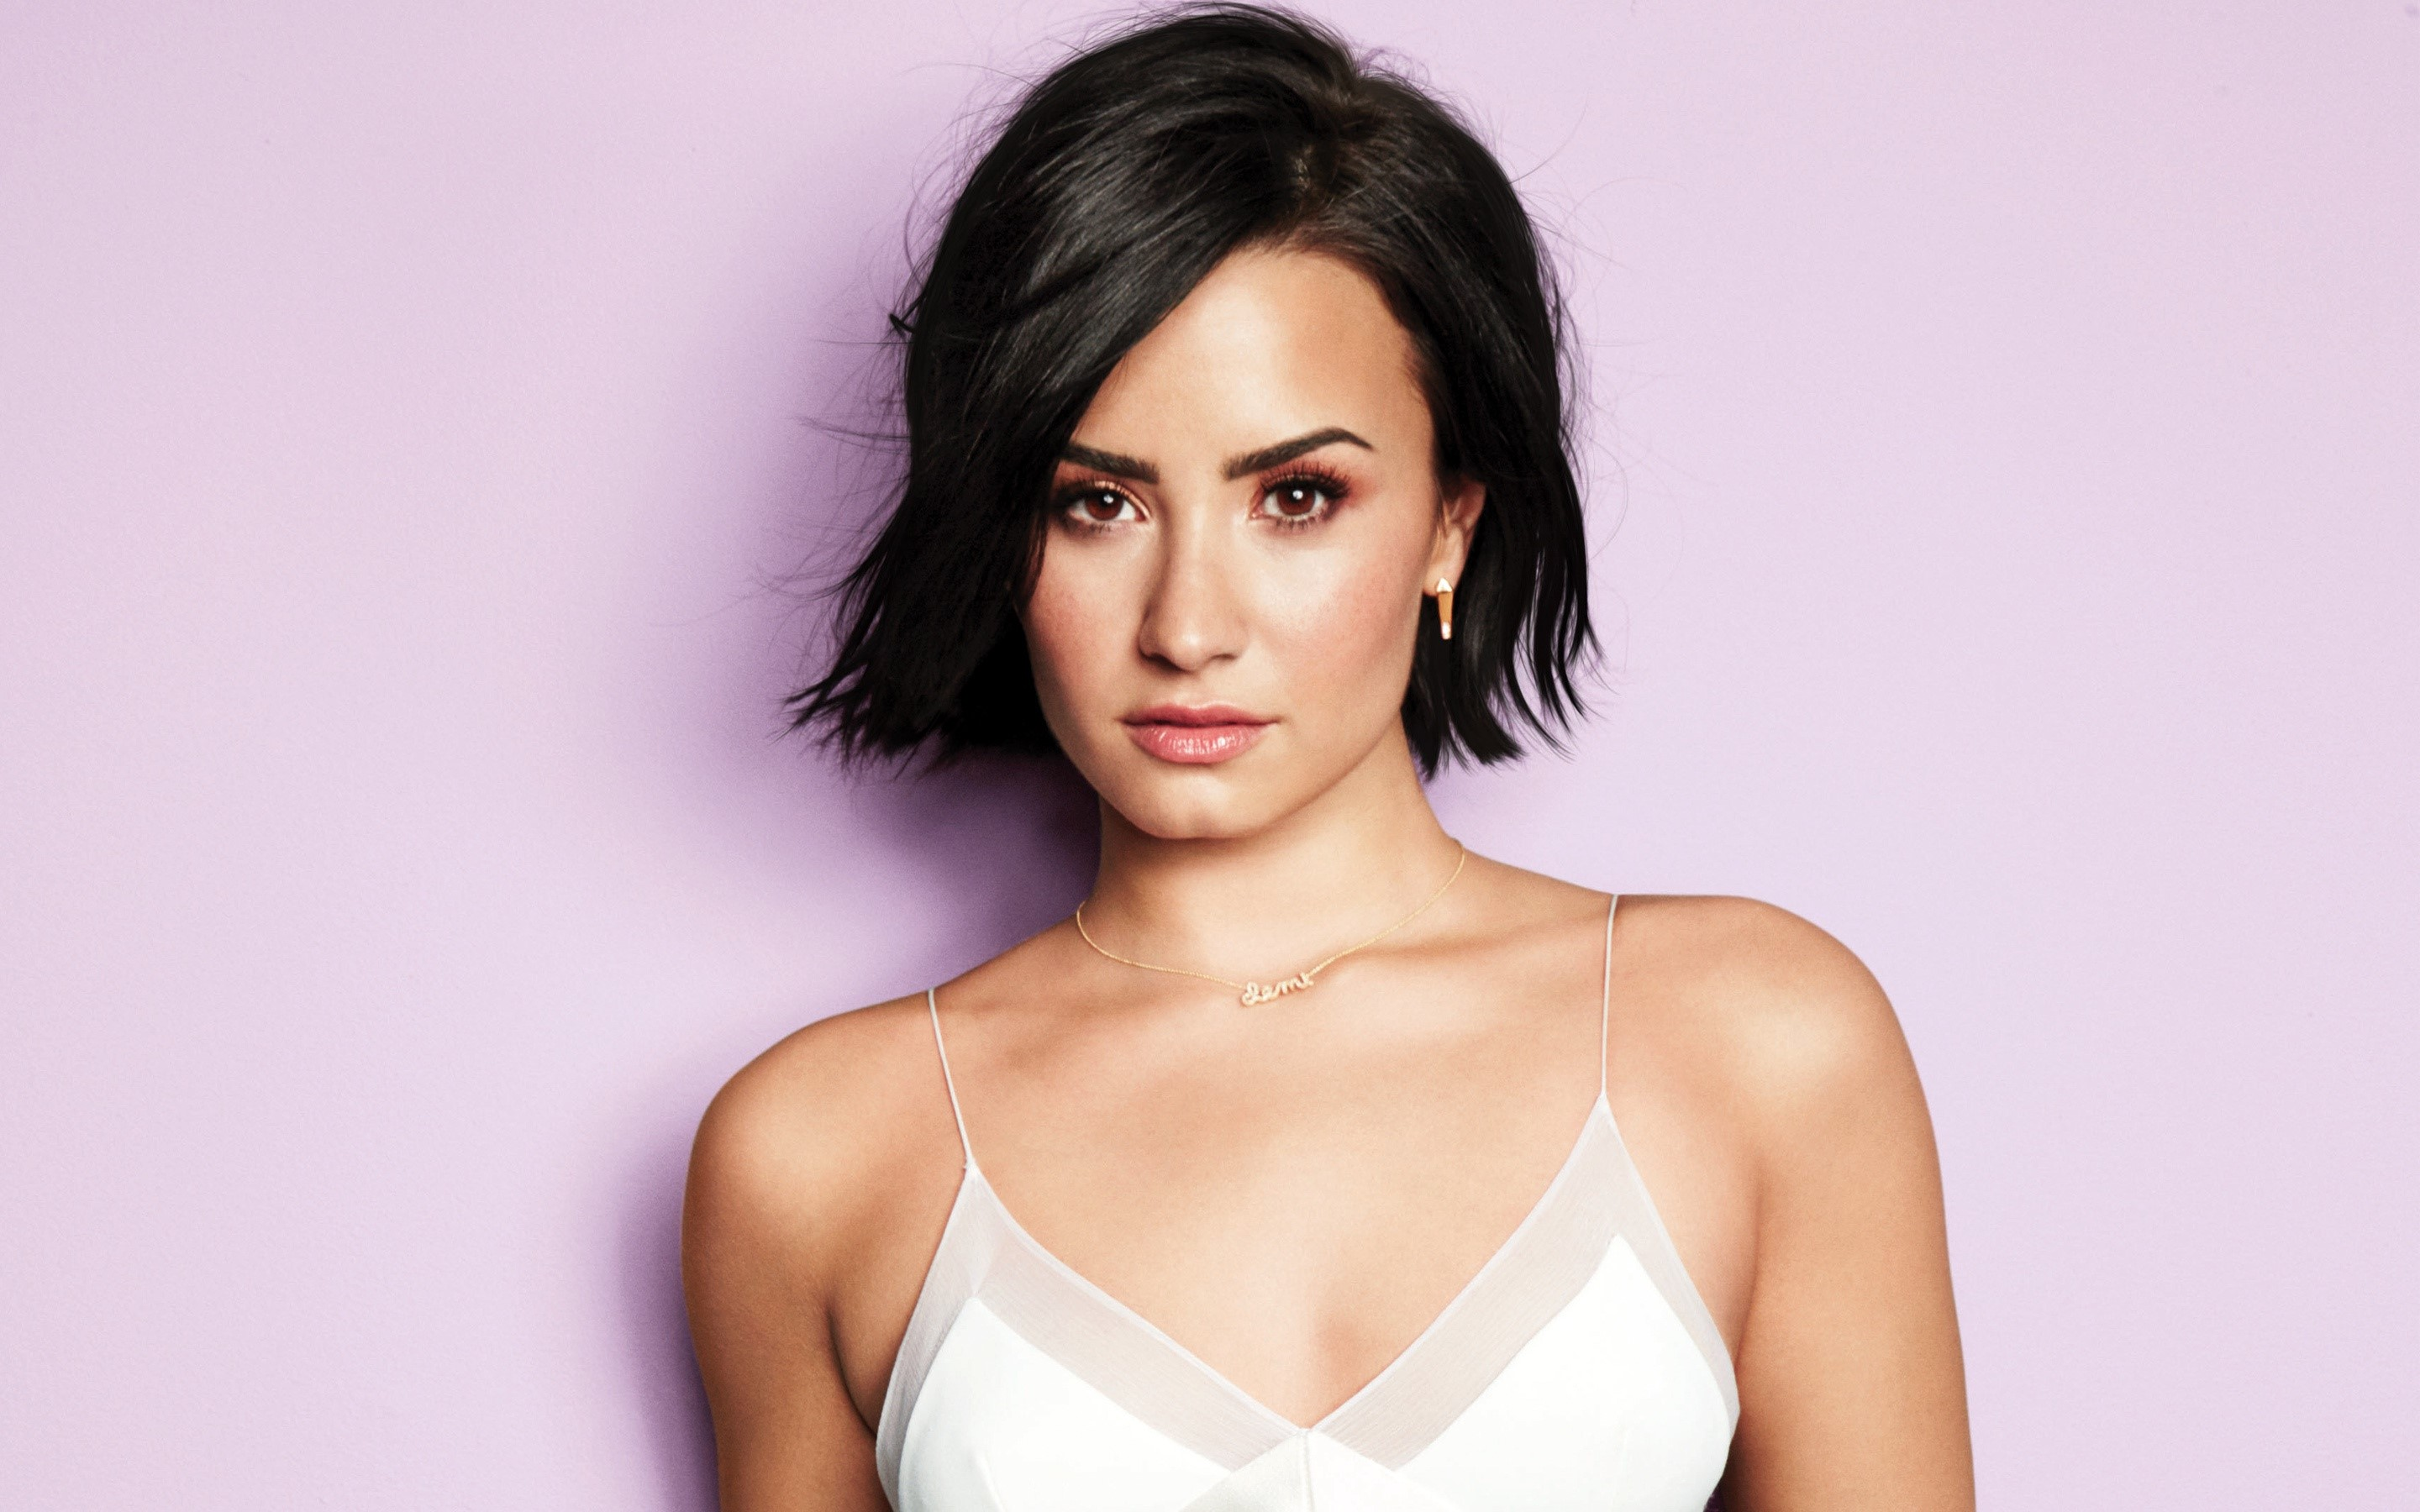 Wallpaper Demi Lovato with short hair